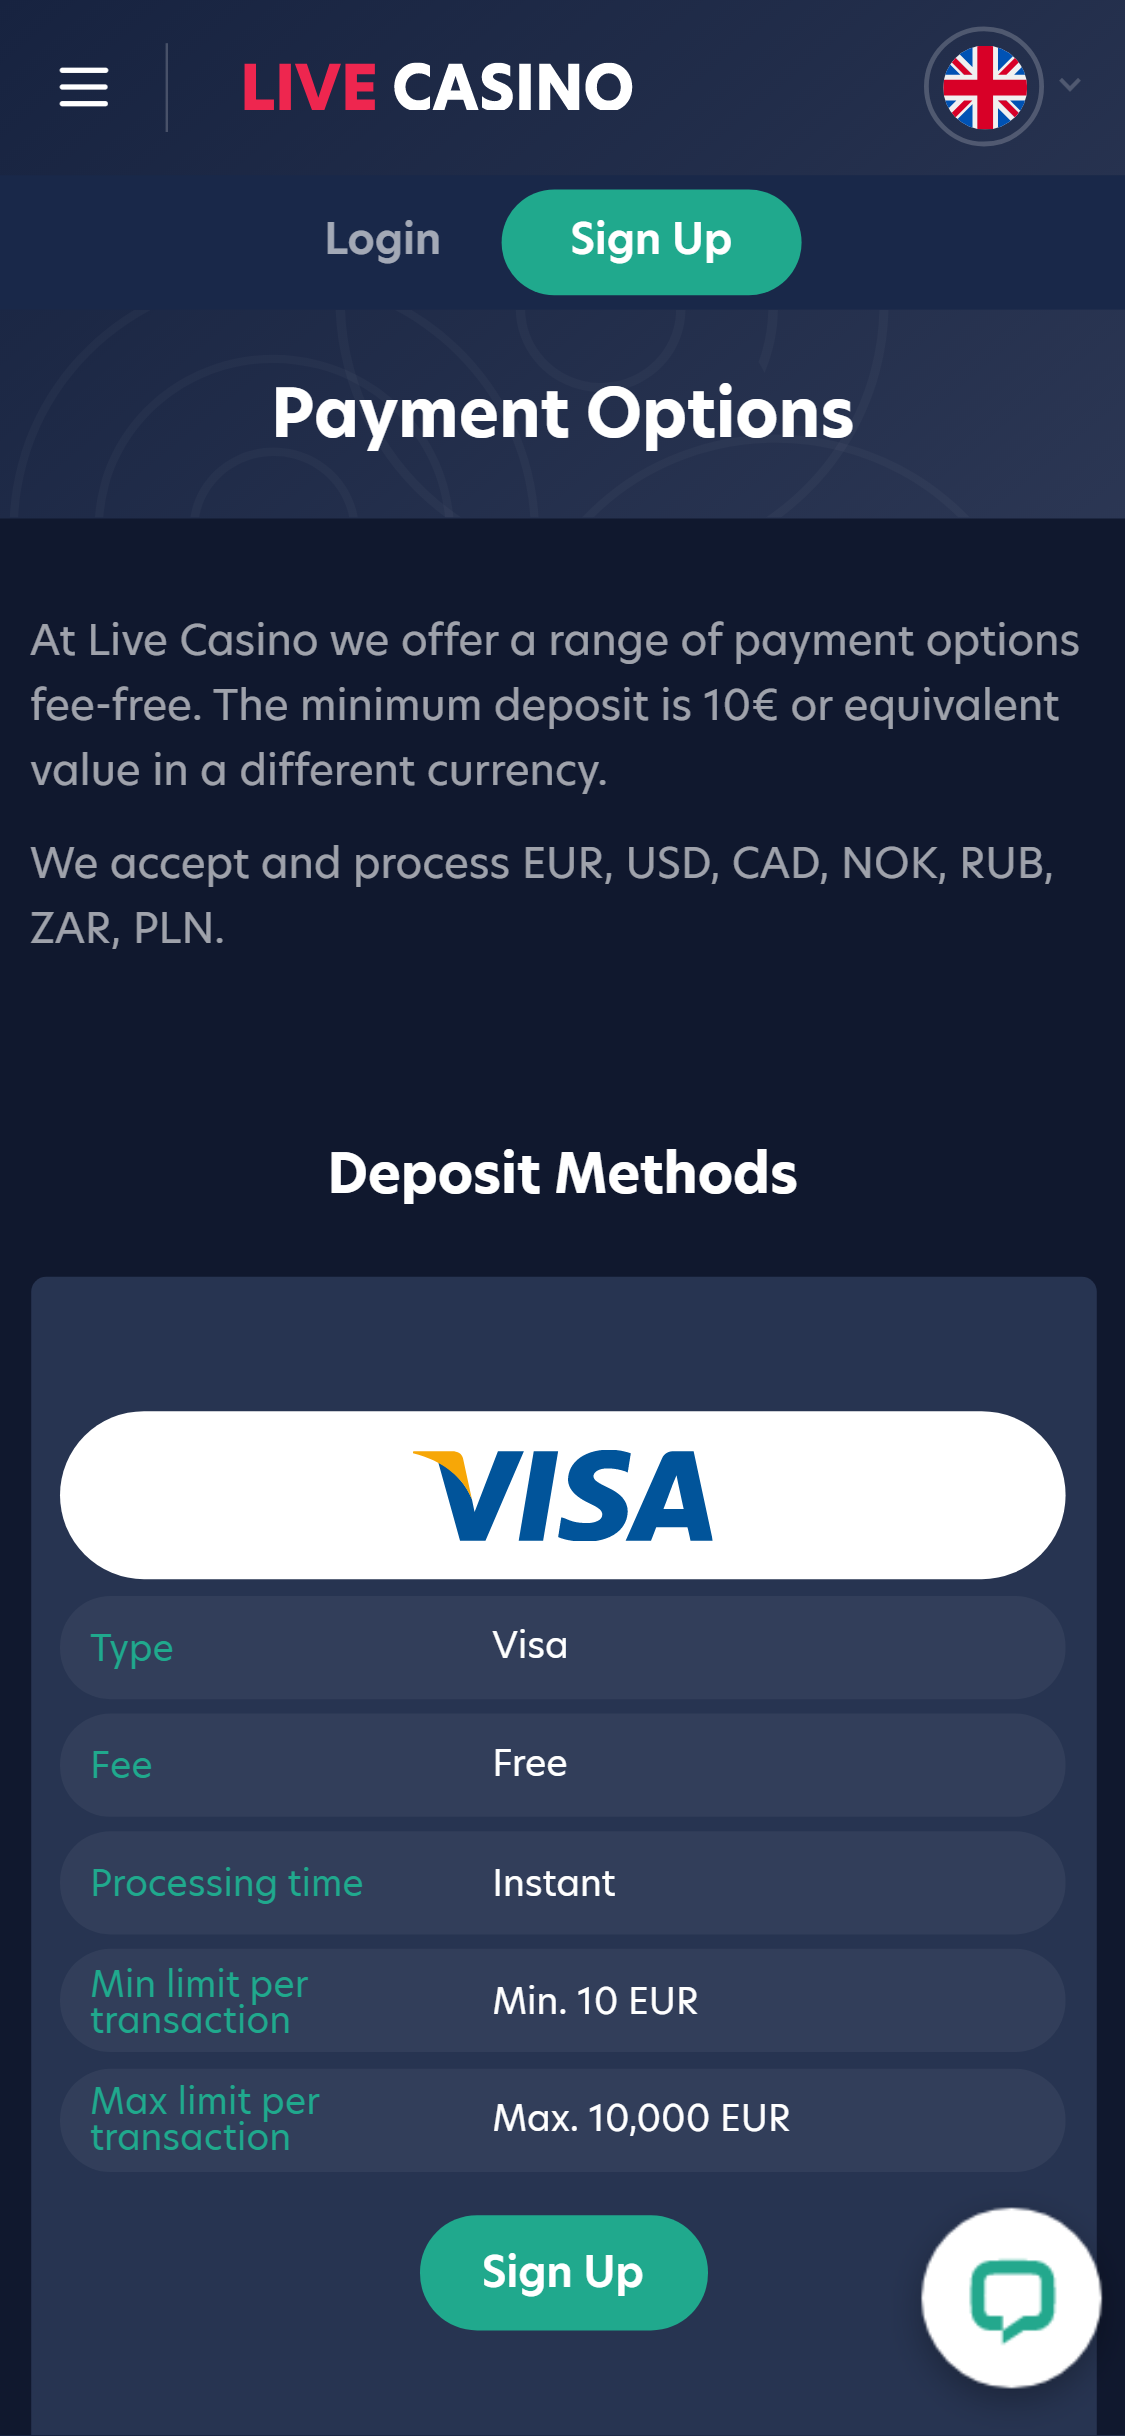 Live Casino Payment Methods